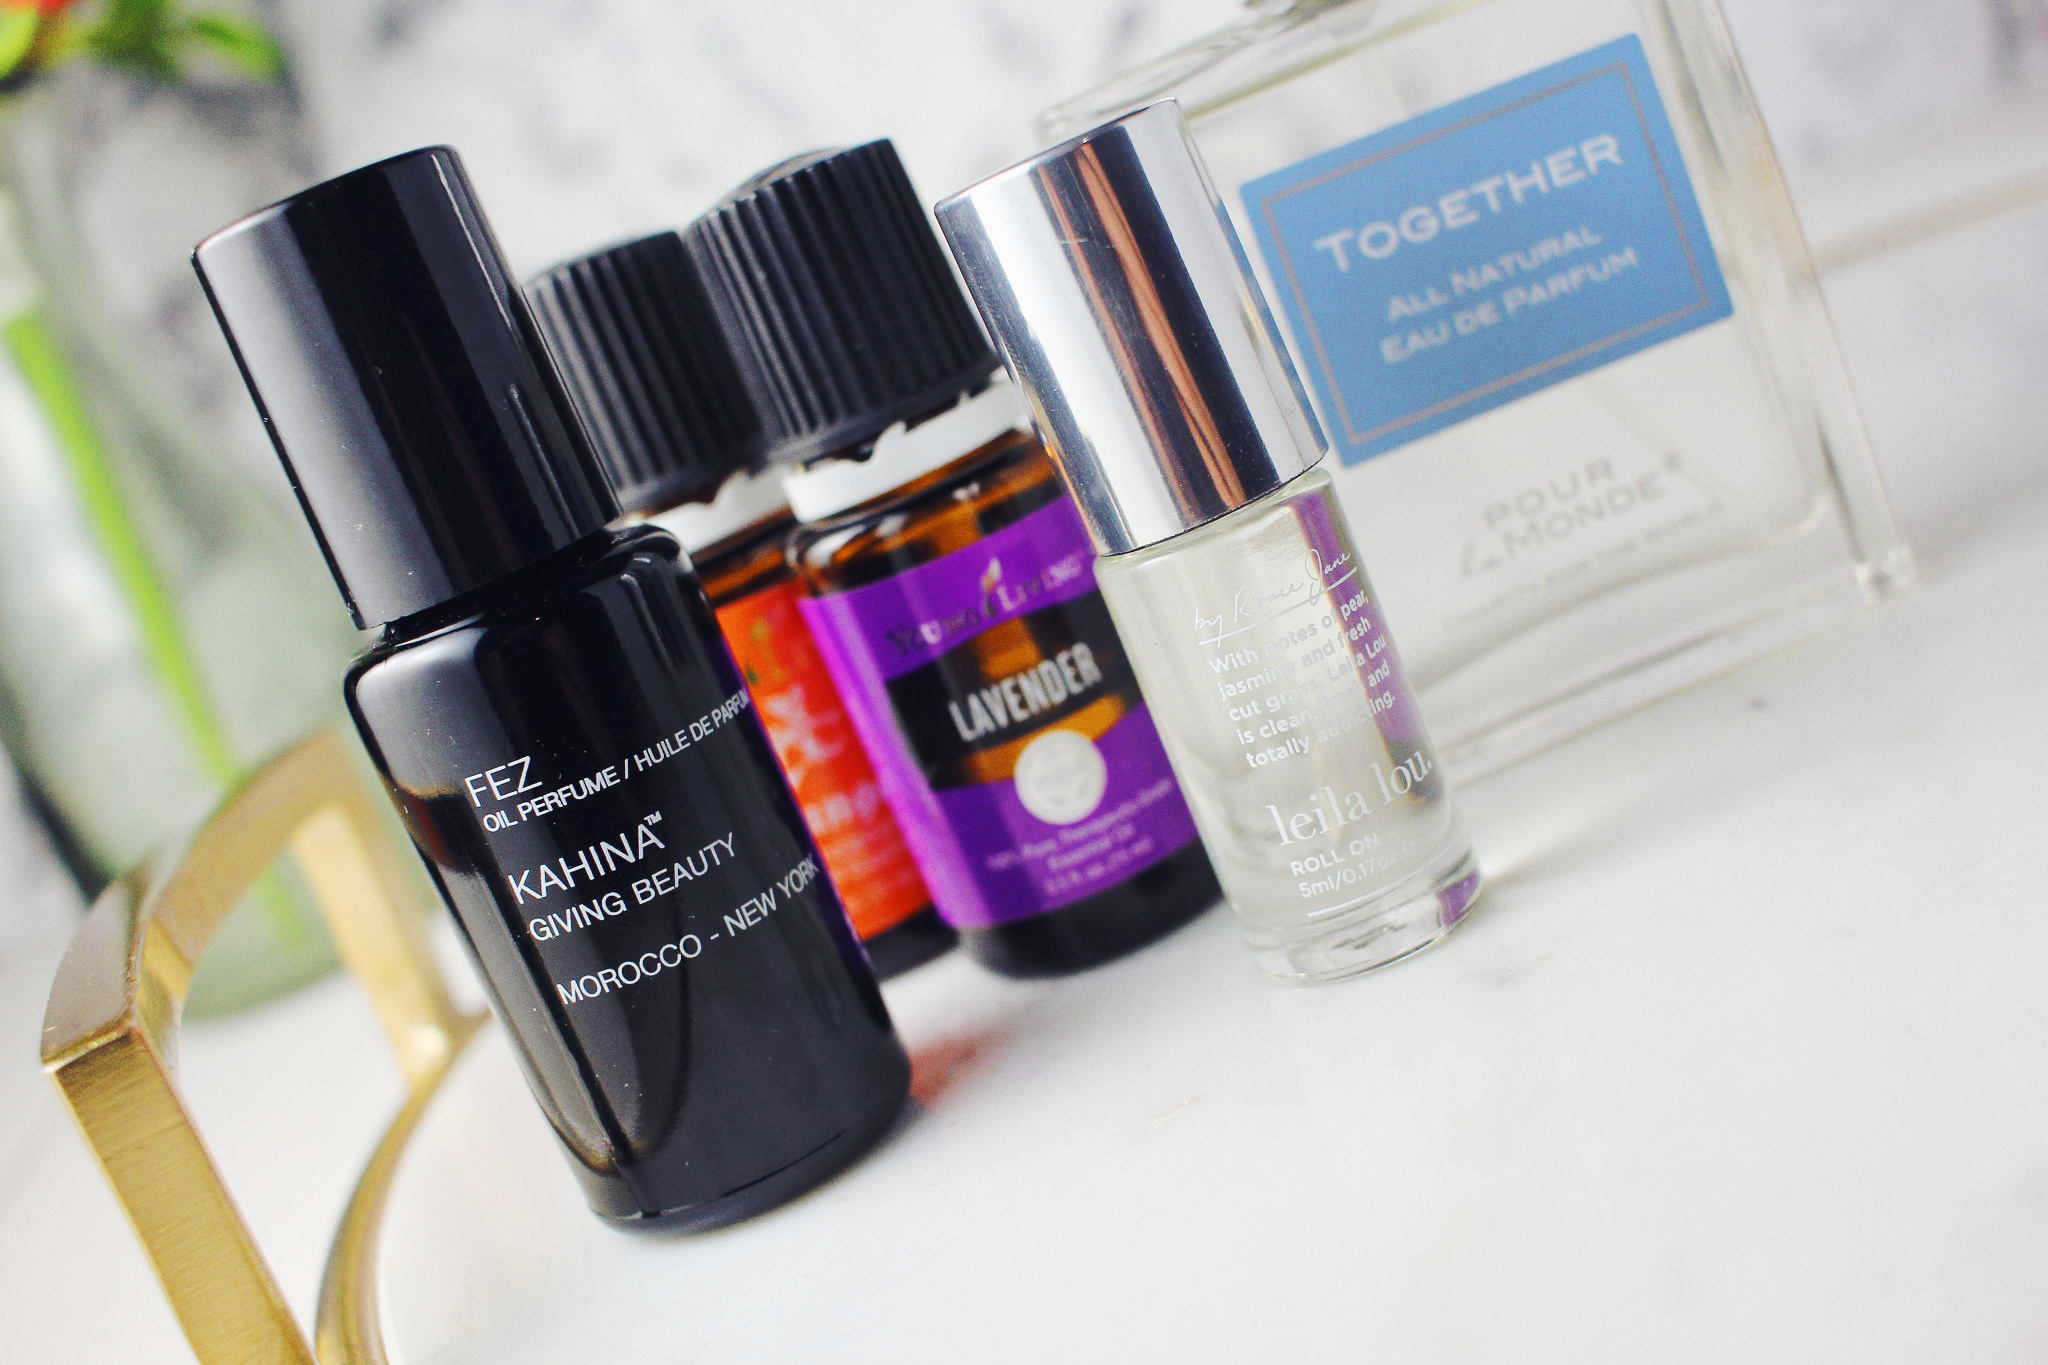 Kahina Giving Beauty Fez Perfume, Pour Le Monde Together Perfume, Leila Lou By Rosie Jane, Young Living Orange and Lavender